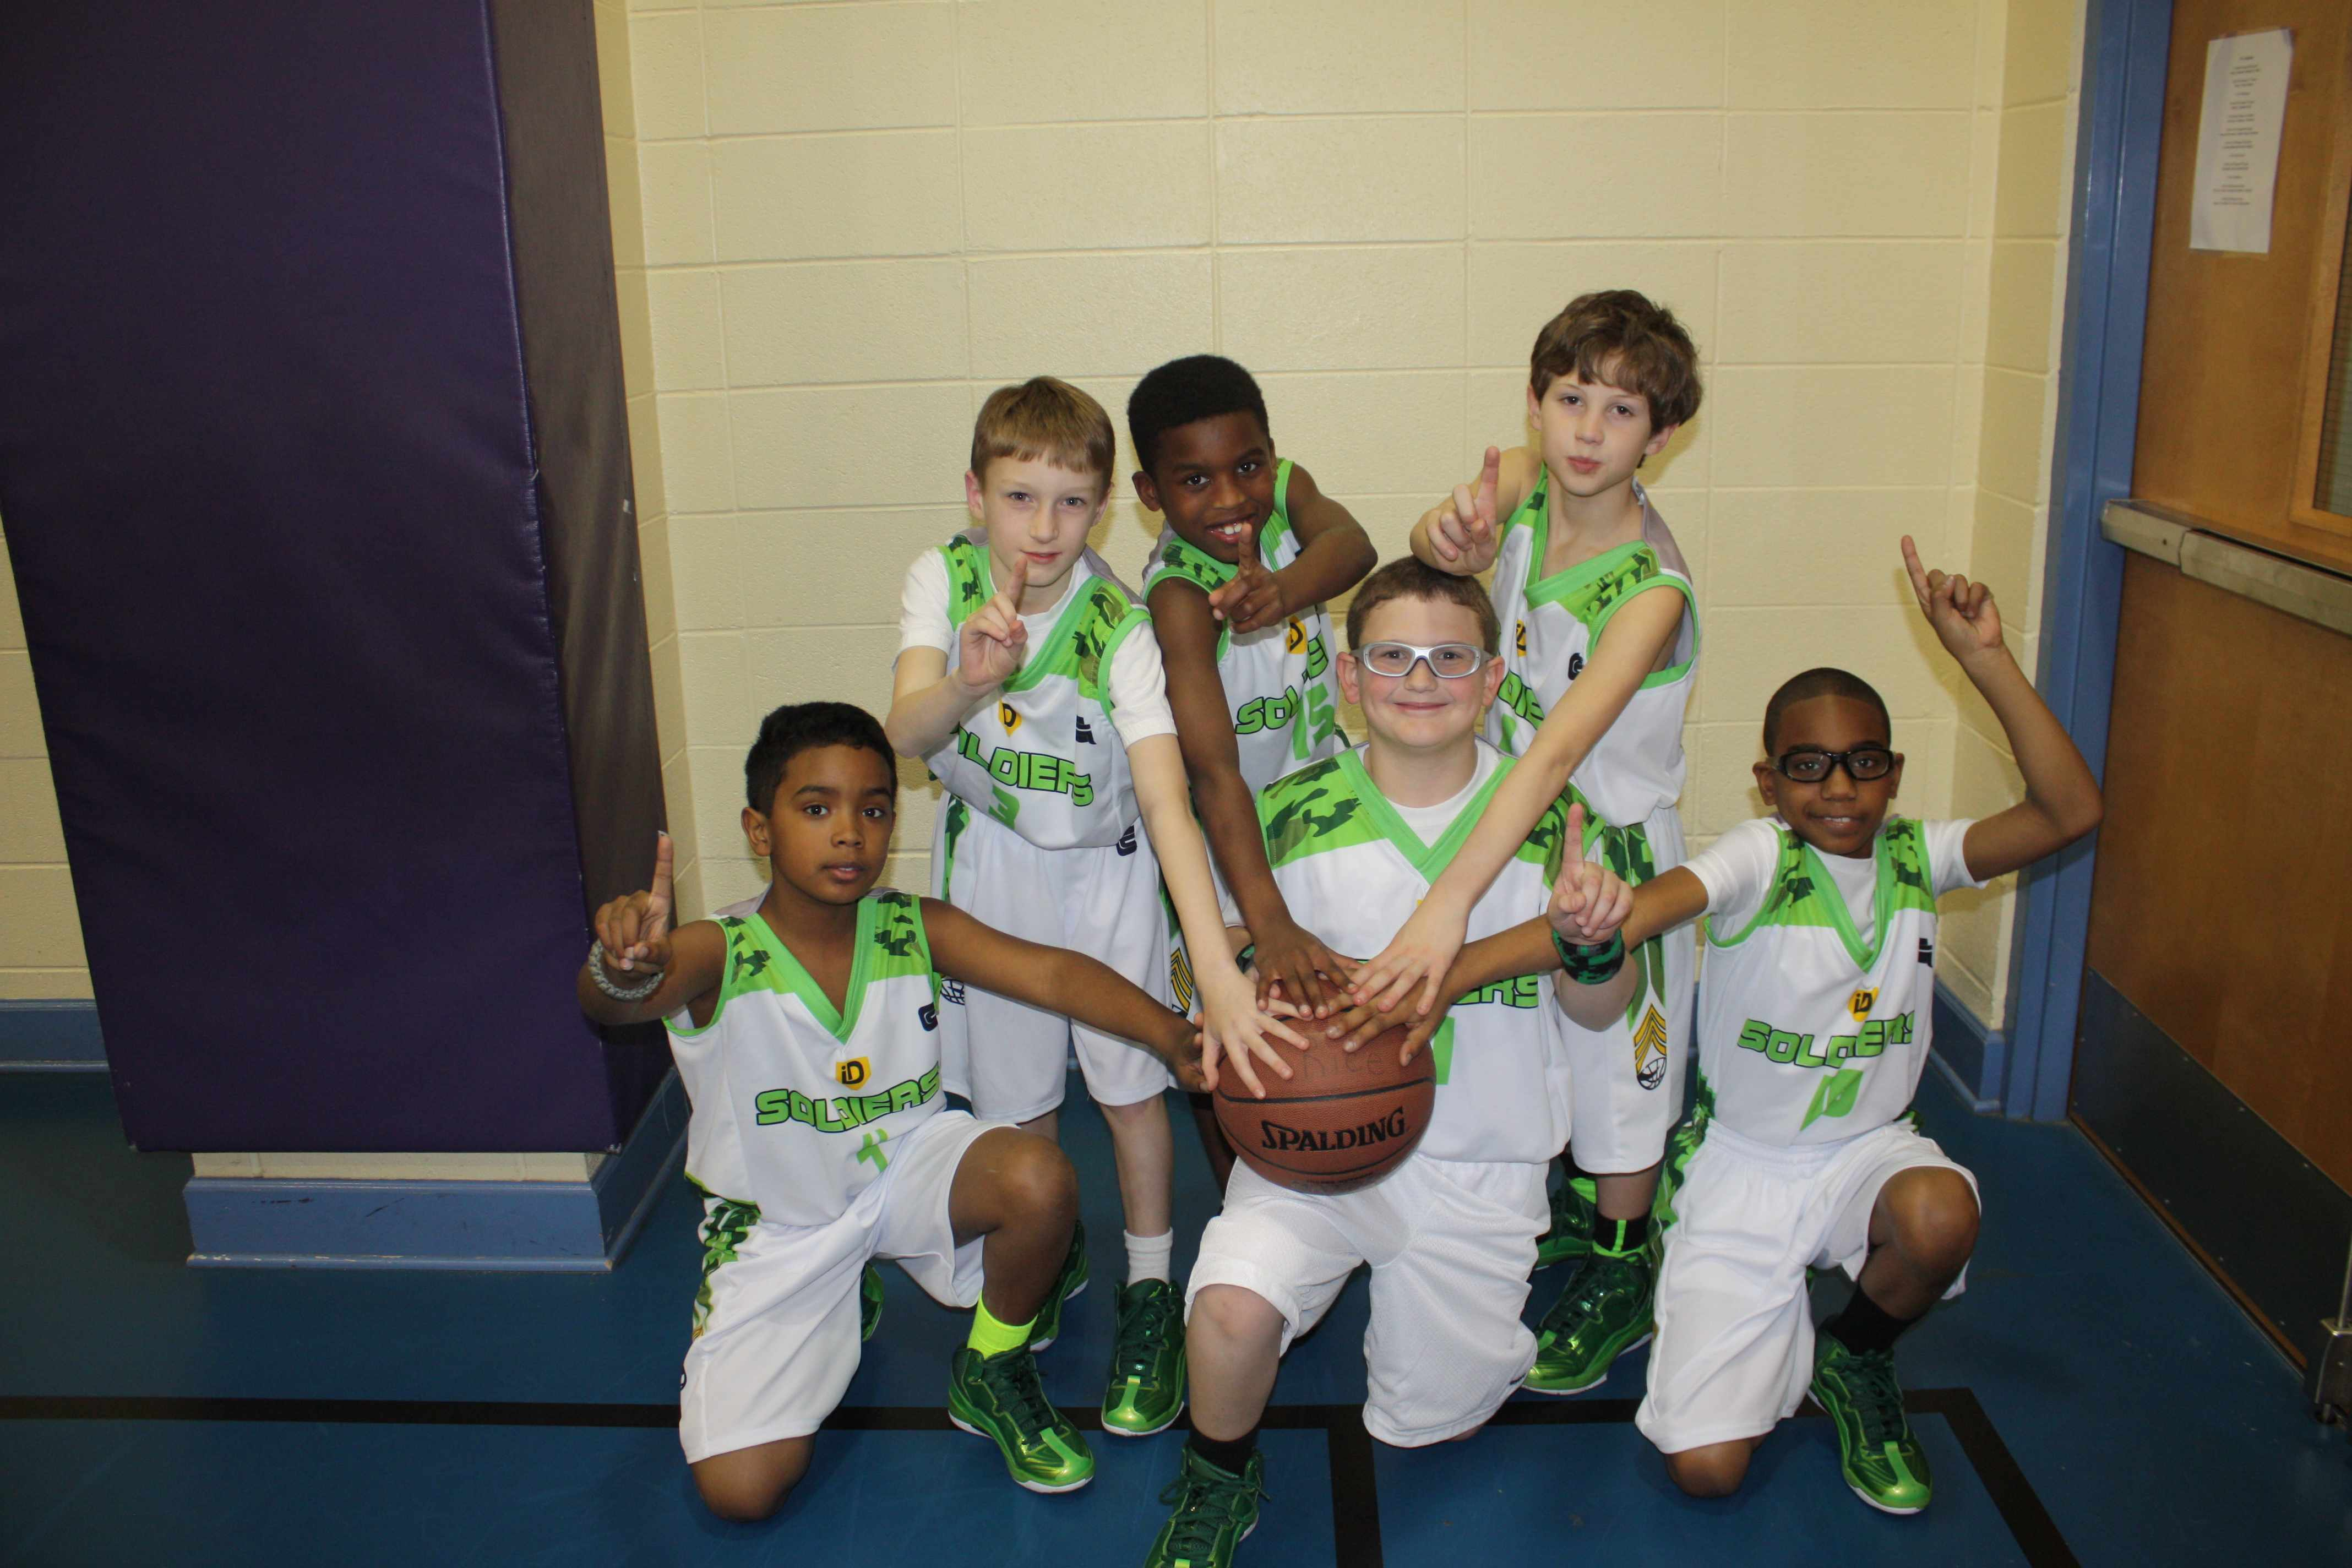 3rd Grade Team (White Uniforms)